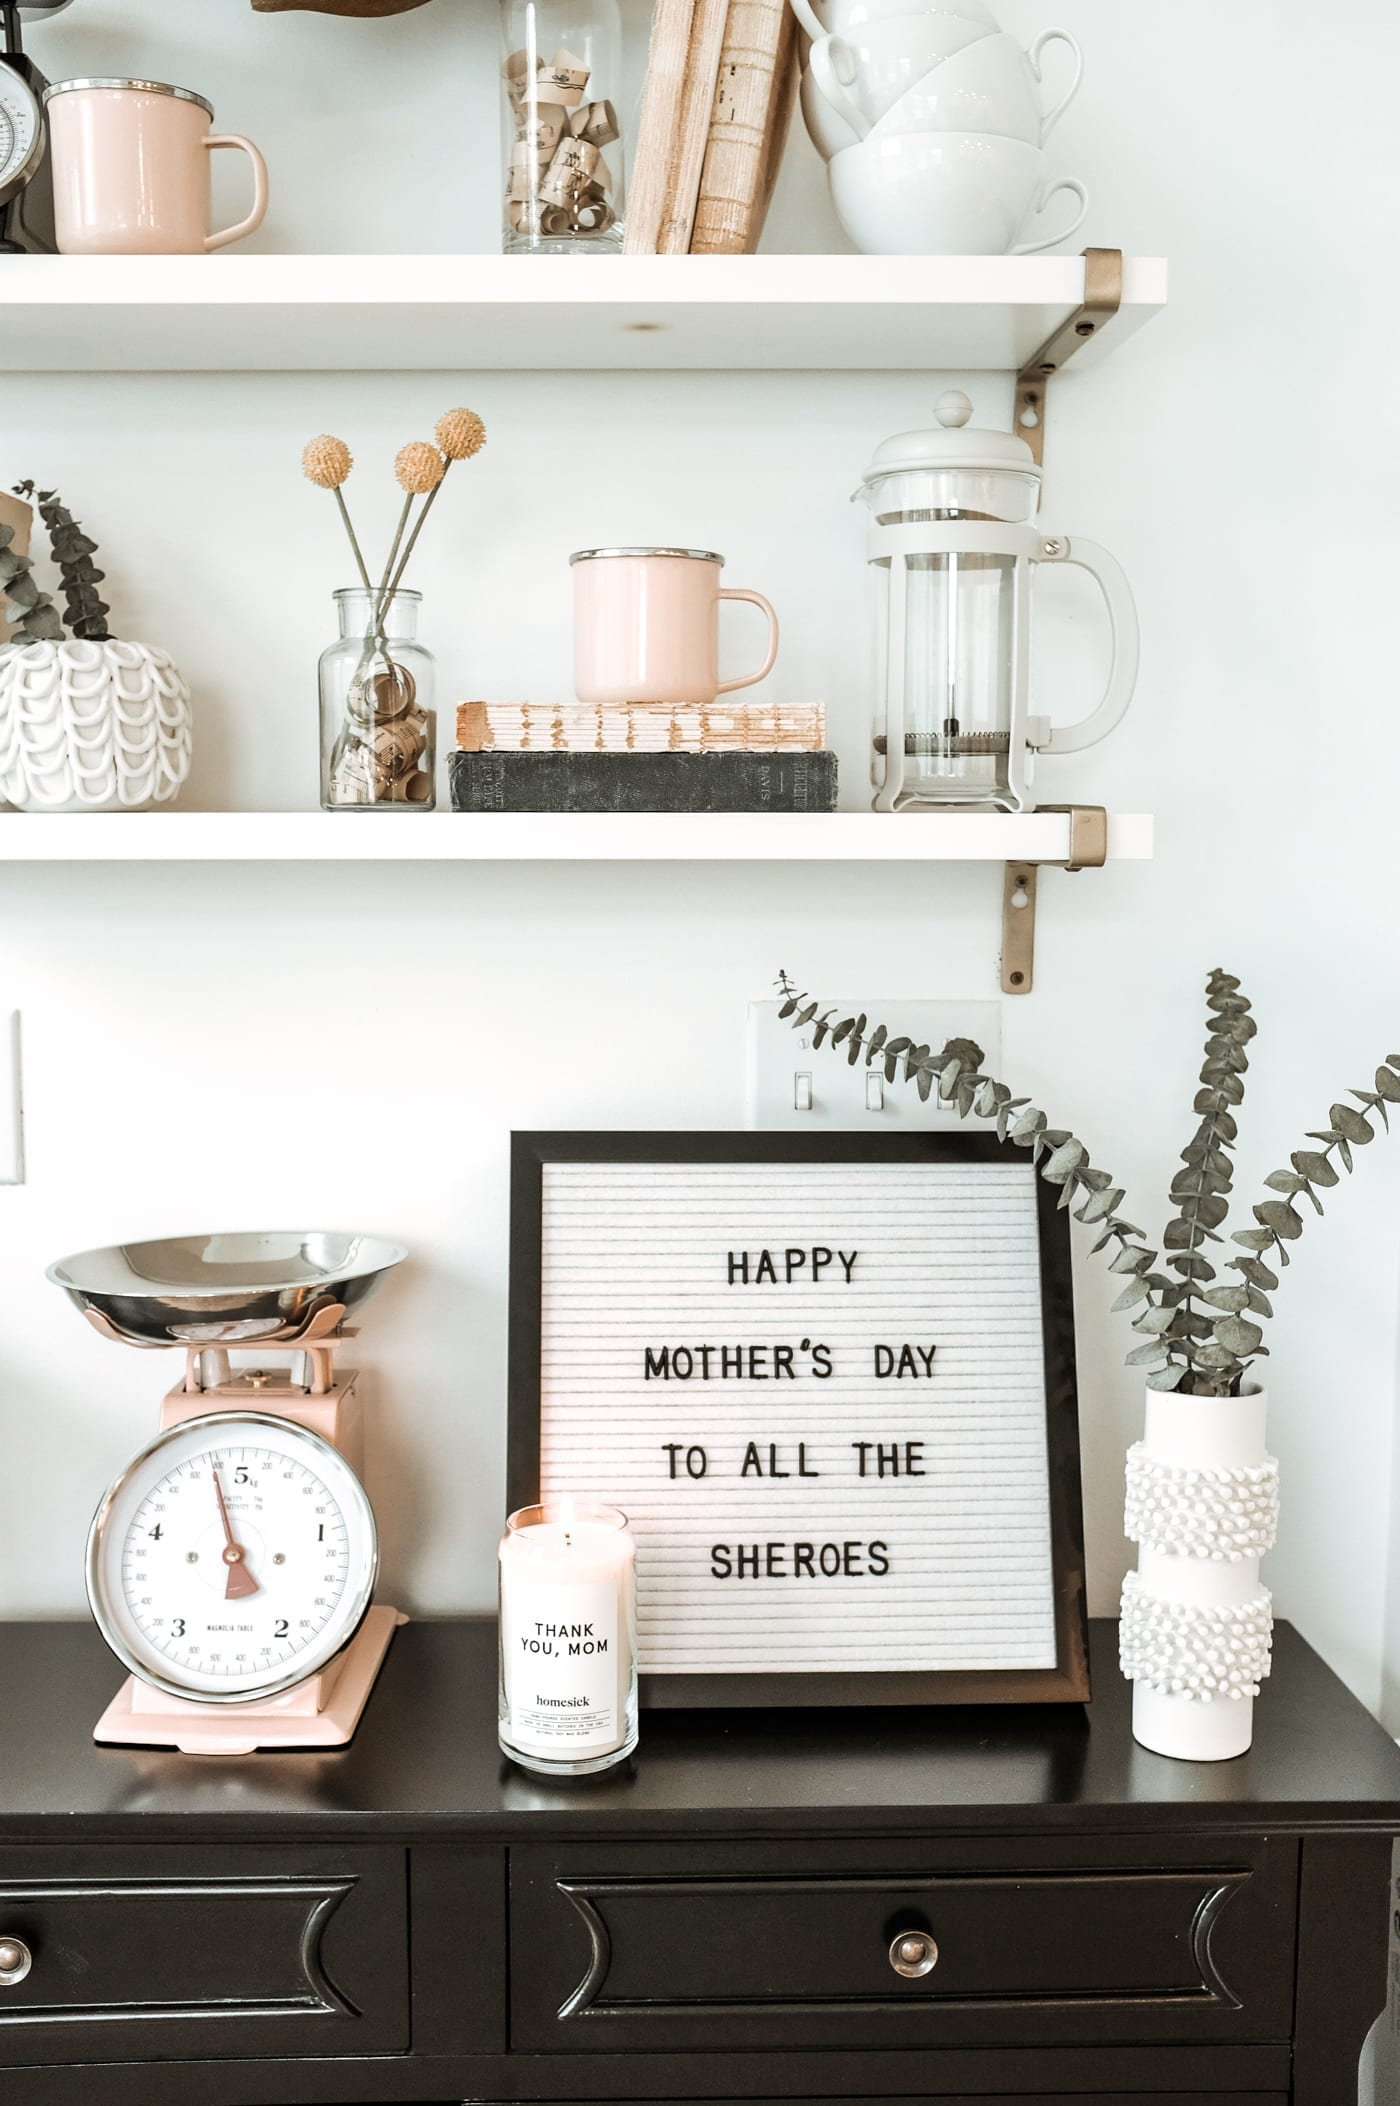 3 Mother's Day Gift Ideas That Mom Will Love!